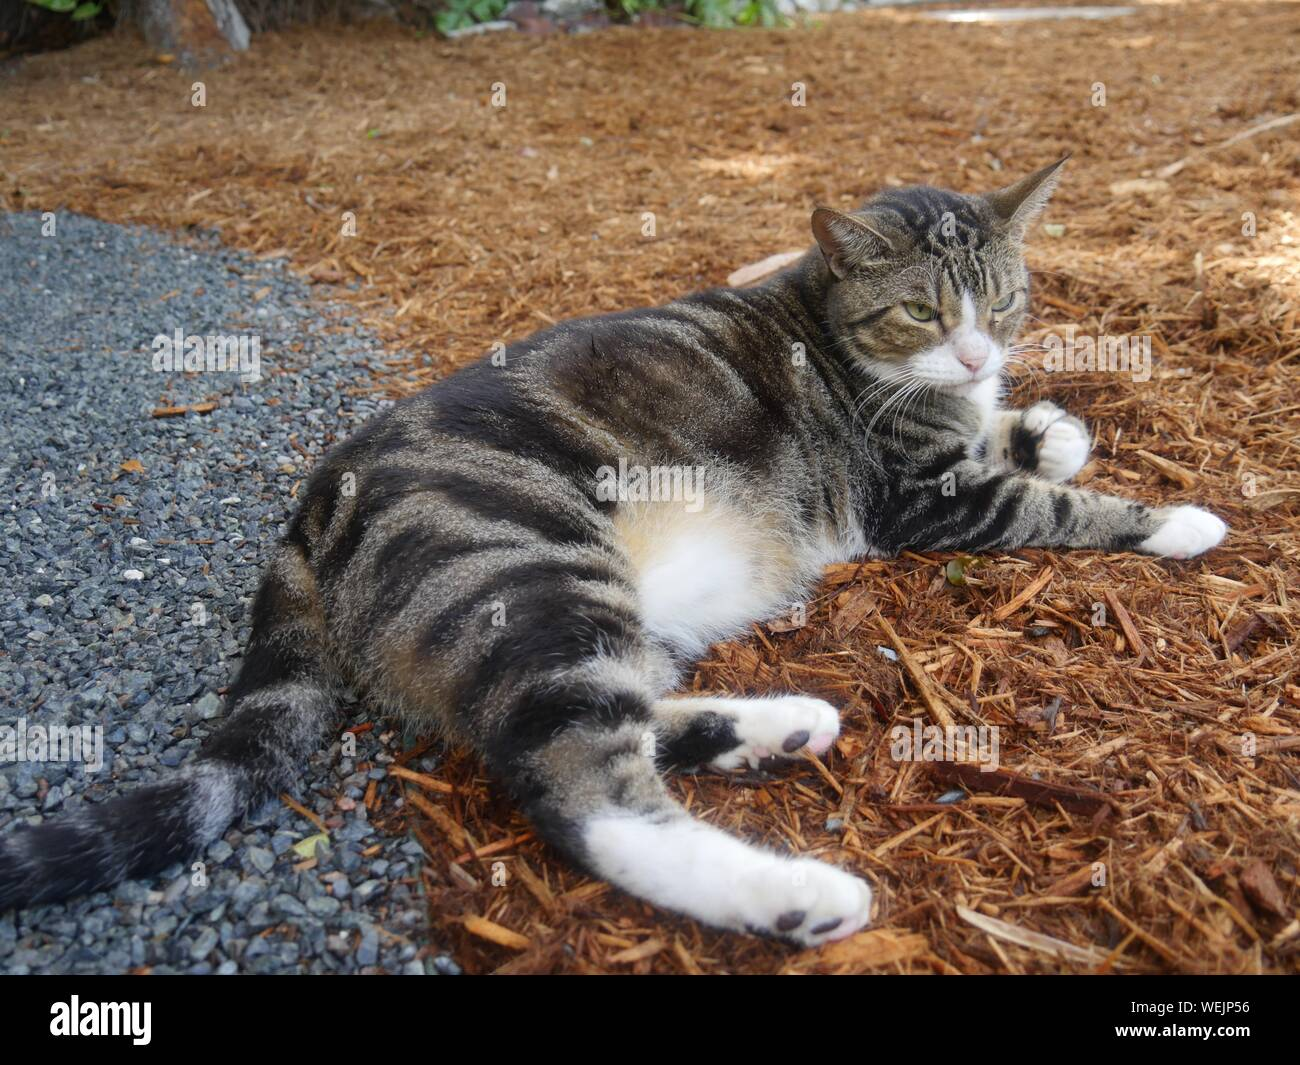 One of the cats at the Ernest Hemingway house in Key West, Florida. Stock Photo